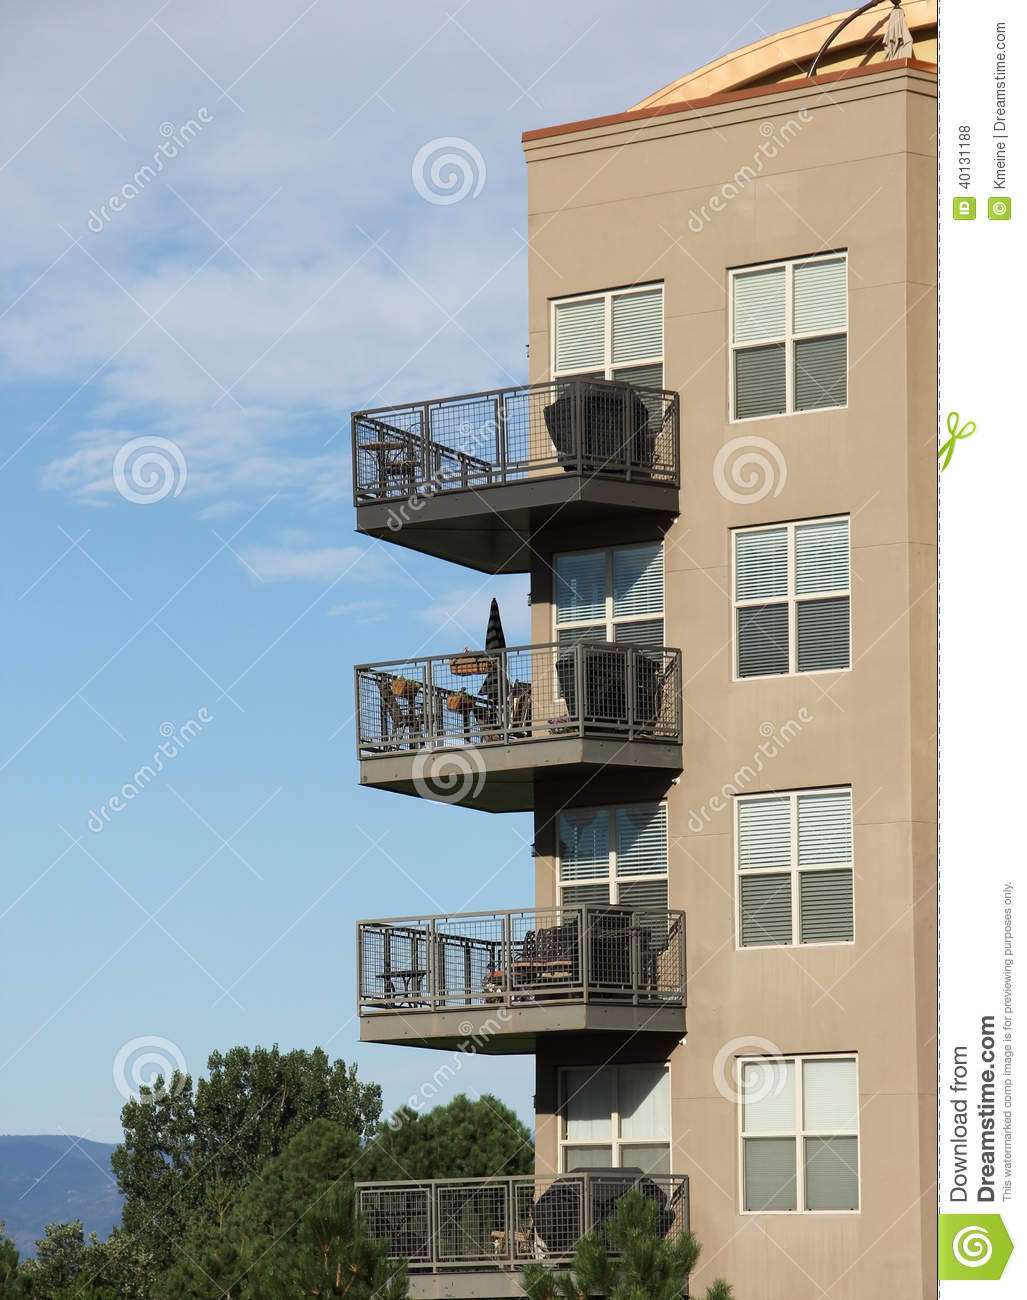 Balconies on modern architecture apartment complex stock